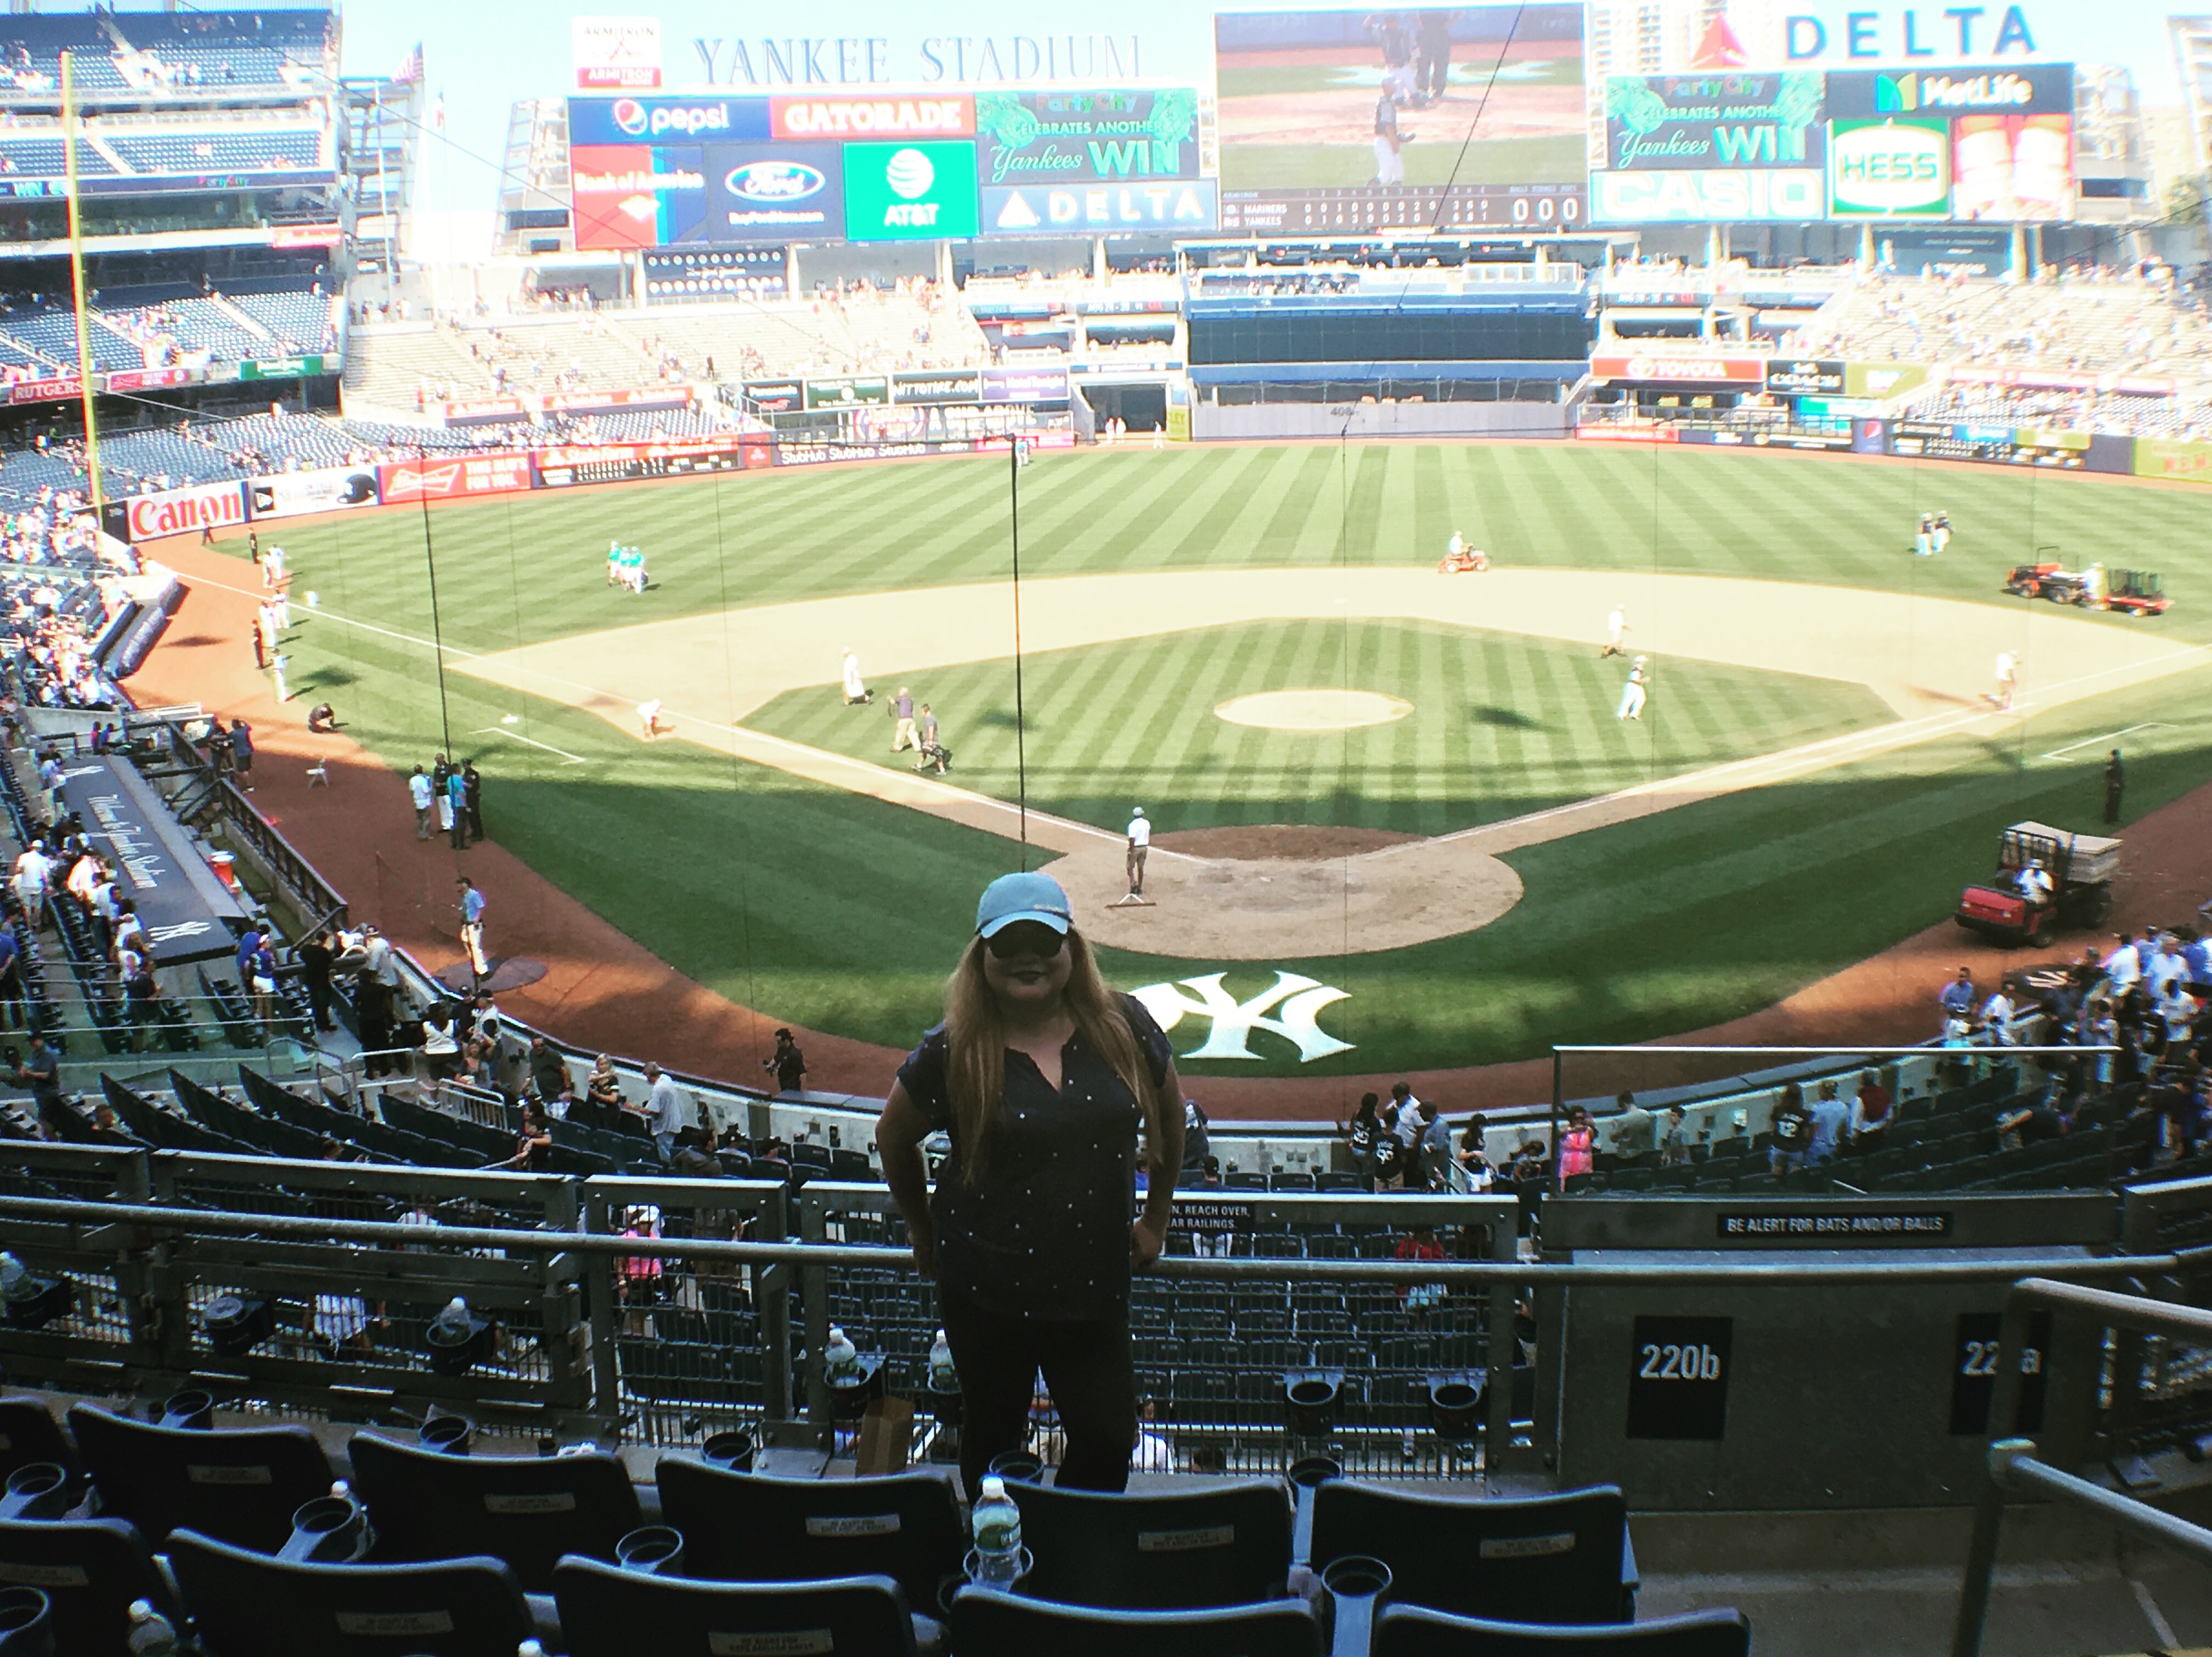 My Awesome New York Yankee Stadium Delta Sky360 Suite Experience